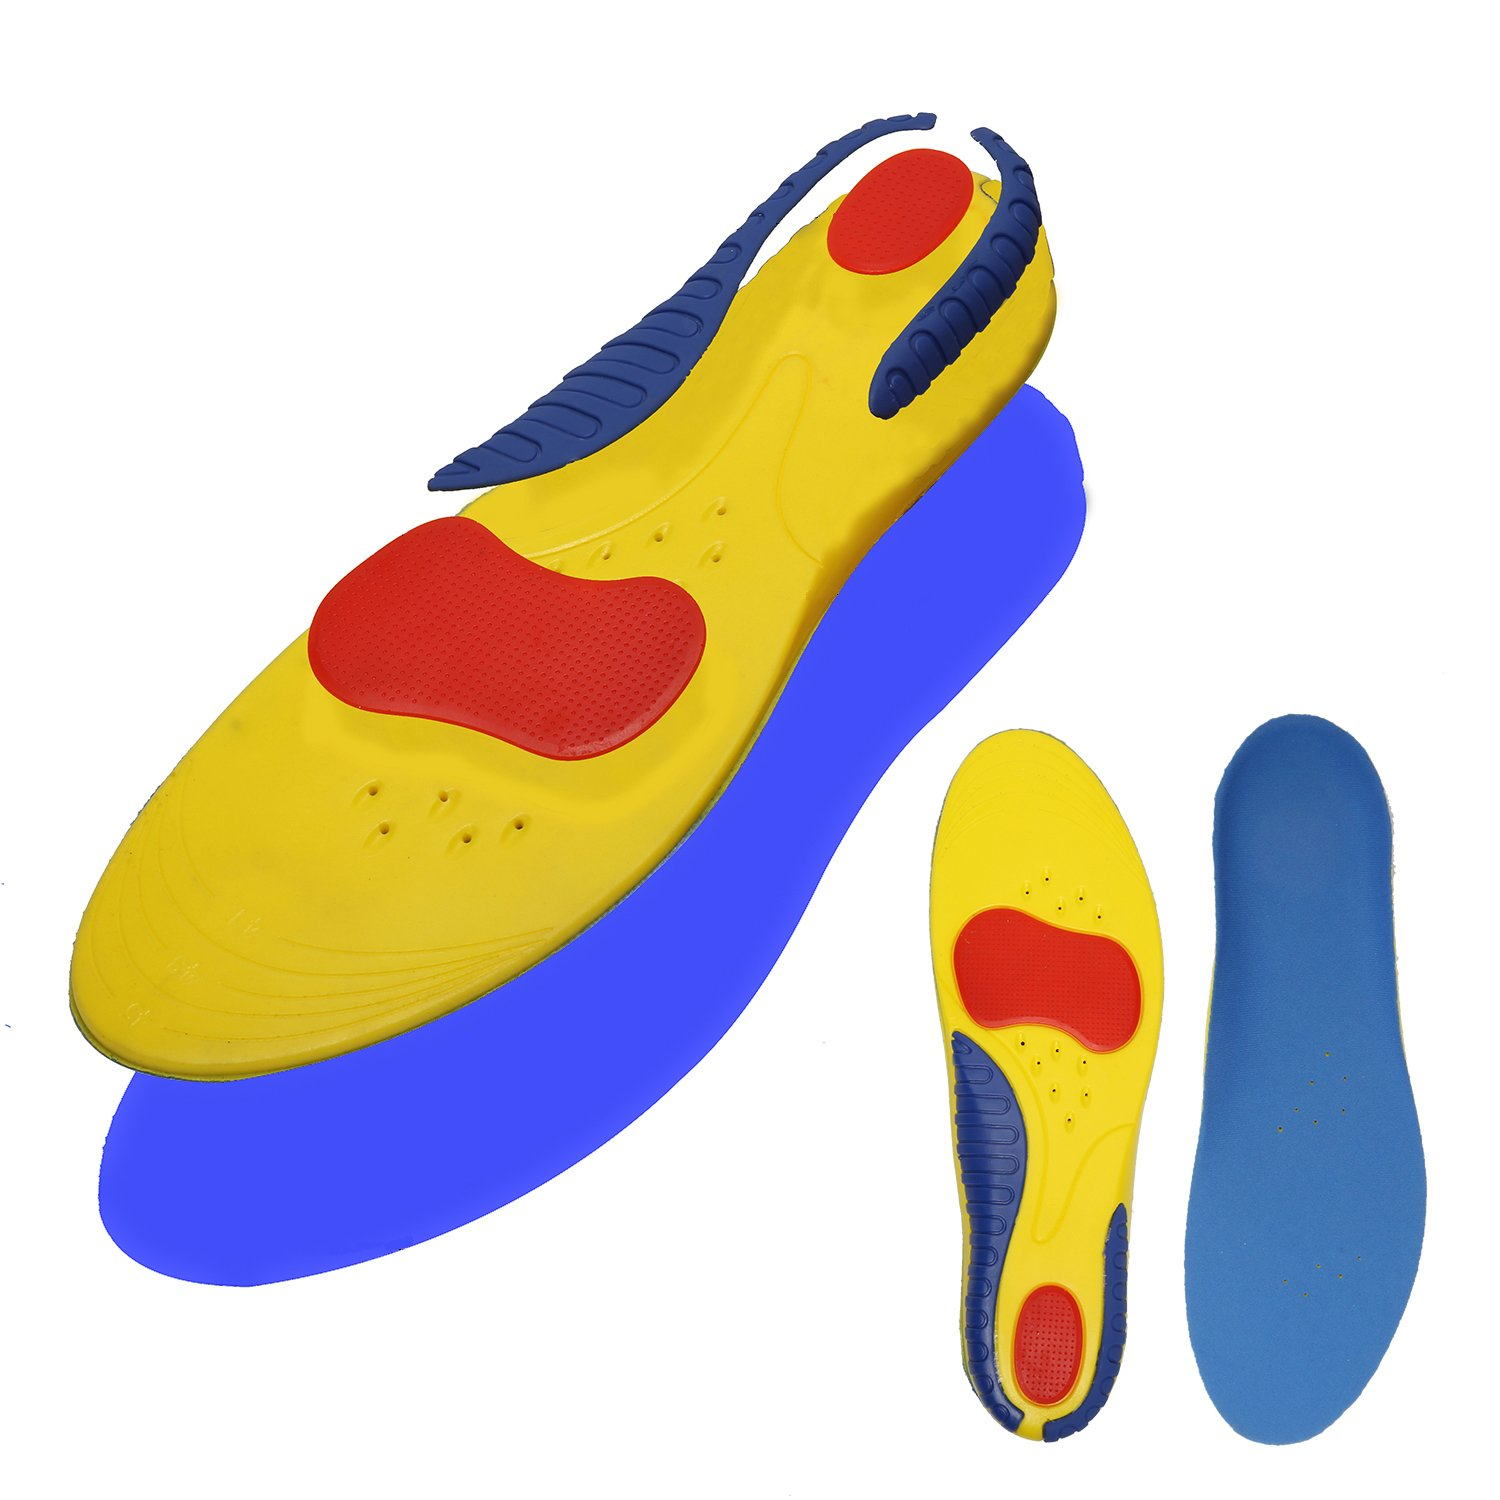 39c205e0a7 Get Quotations · Shoe Inserts Orthotics for Plantar Fasciitis - Arch  Support Relieve Feet Pain, Heel Pain -